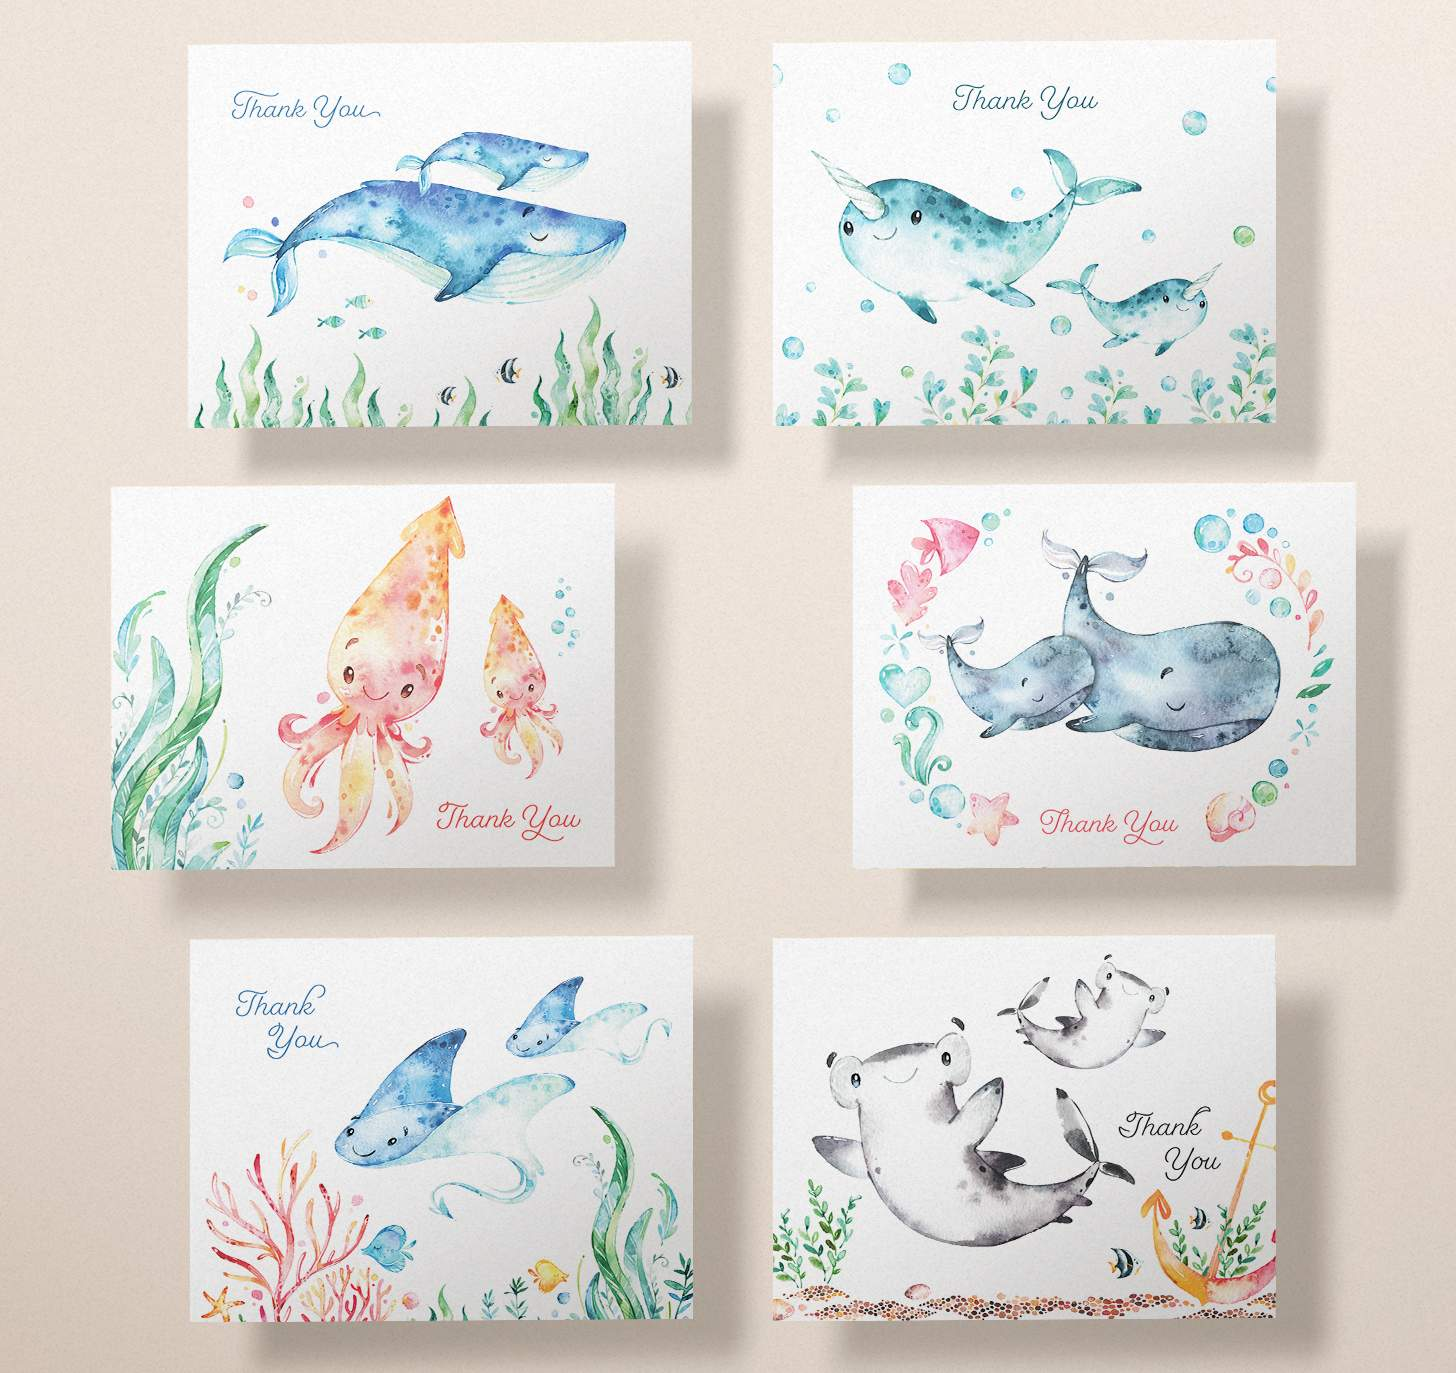 Six cards with mother and baby blue whale, gray whale, narwhal, squid, shark, and sting ray designs